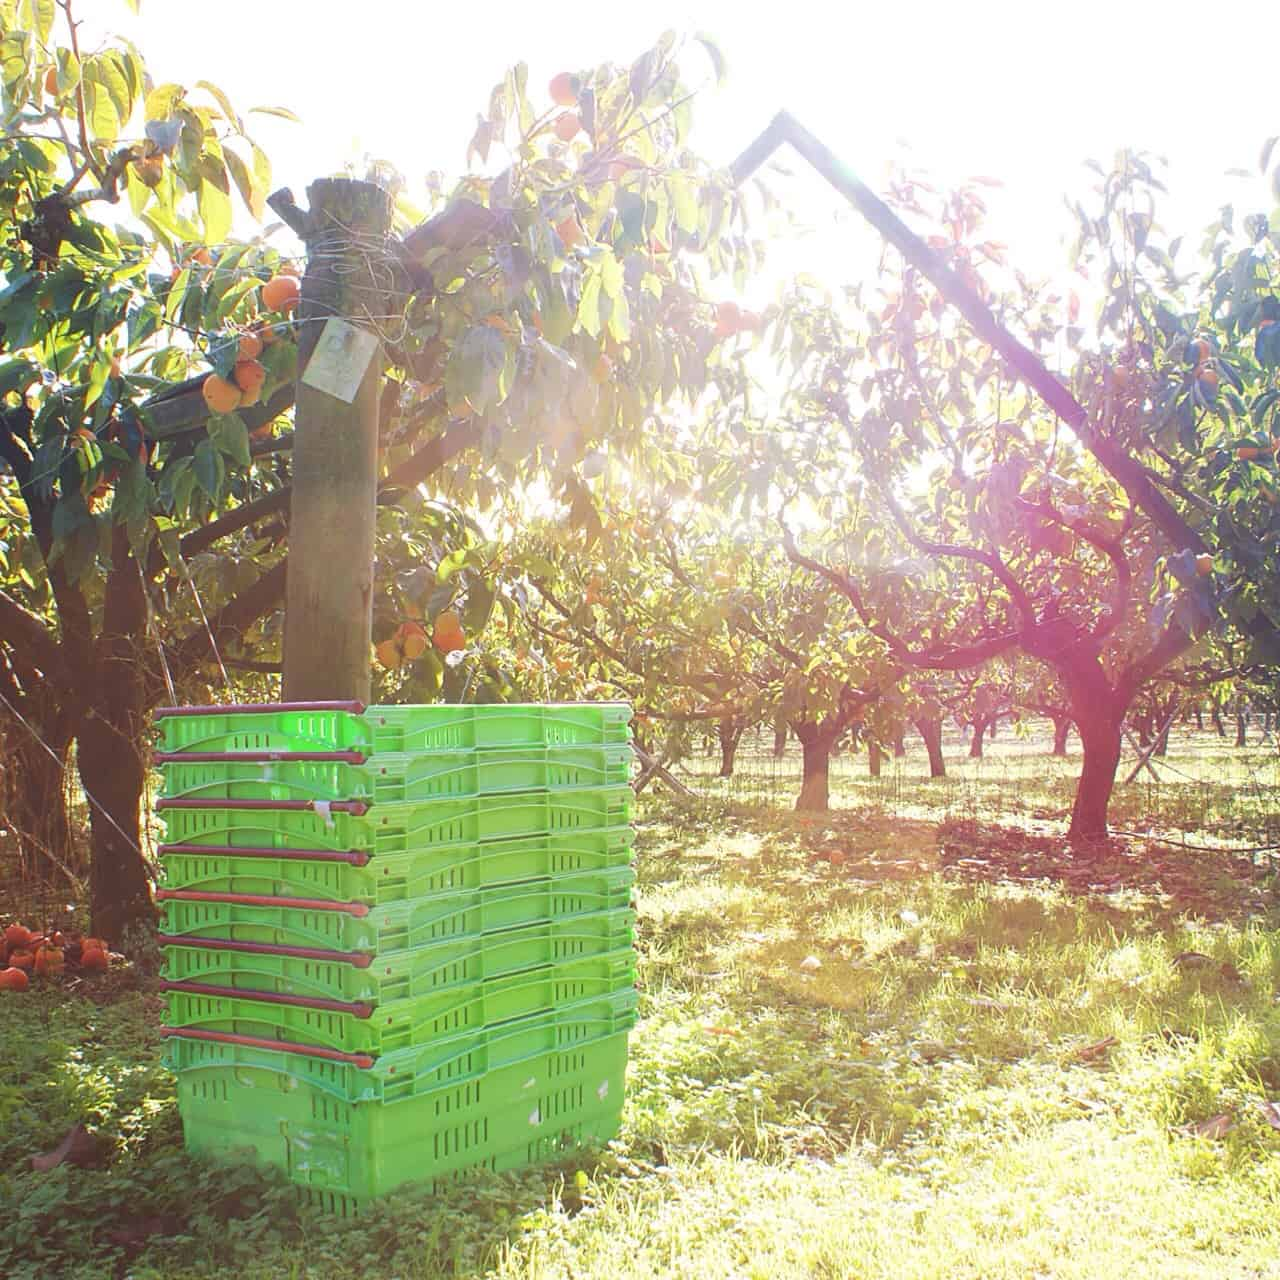 This large, commercial persimmon orchard (The Persimmon Patch on Kerikeri Road) sells directly to the public, via an honesty box system. You have to drive all the way through the beautiful orchard to get to the farm stall.